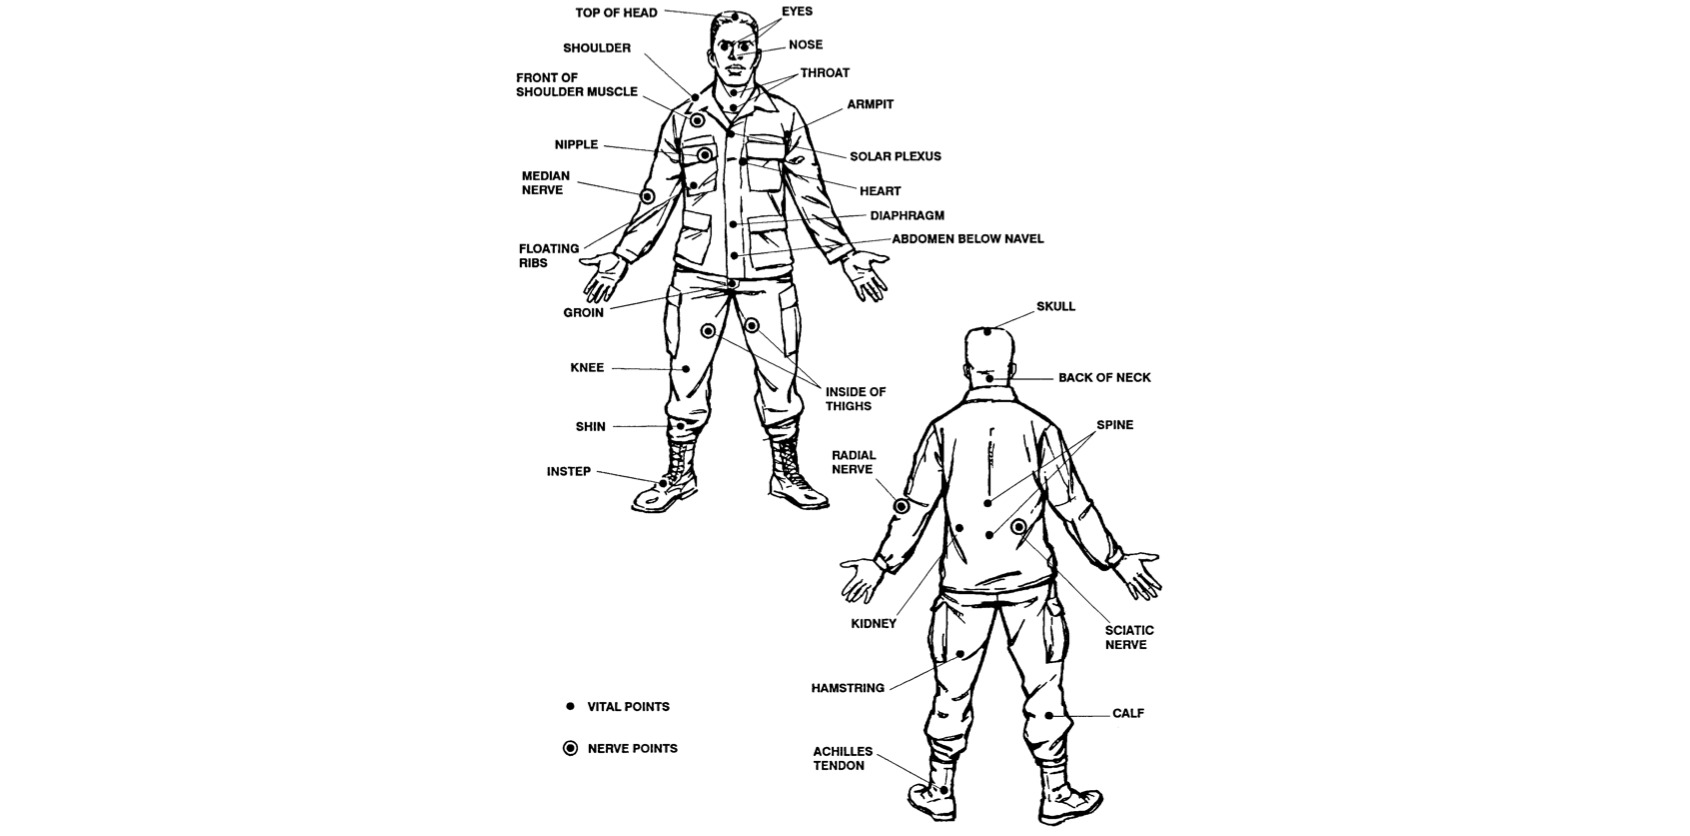 Basic Hand to Hand Self Defense : Vital Target Areas on